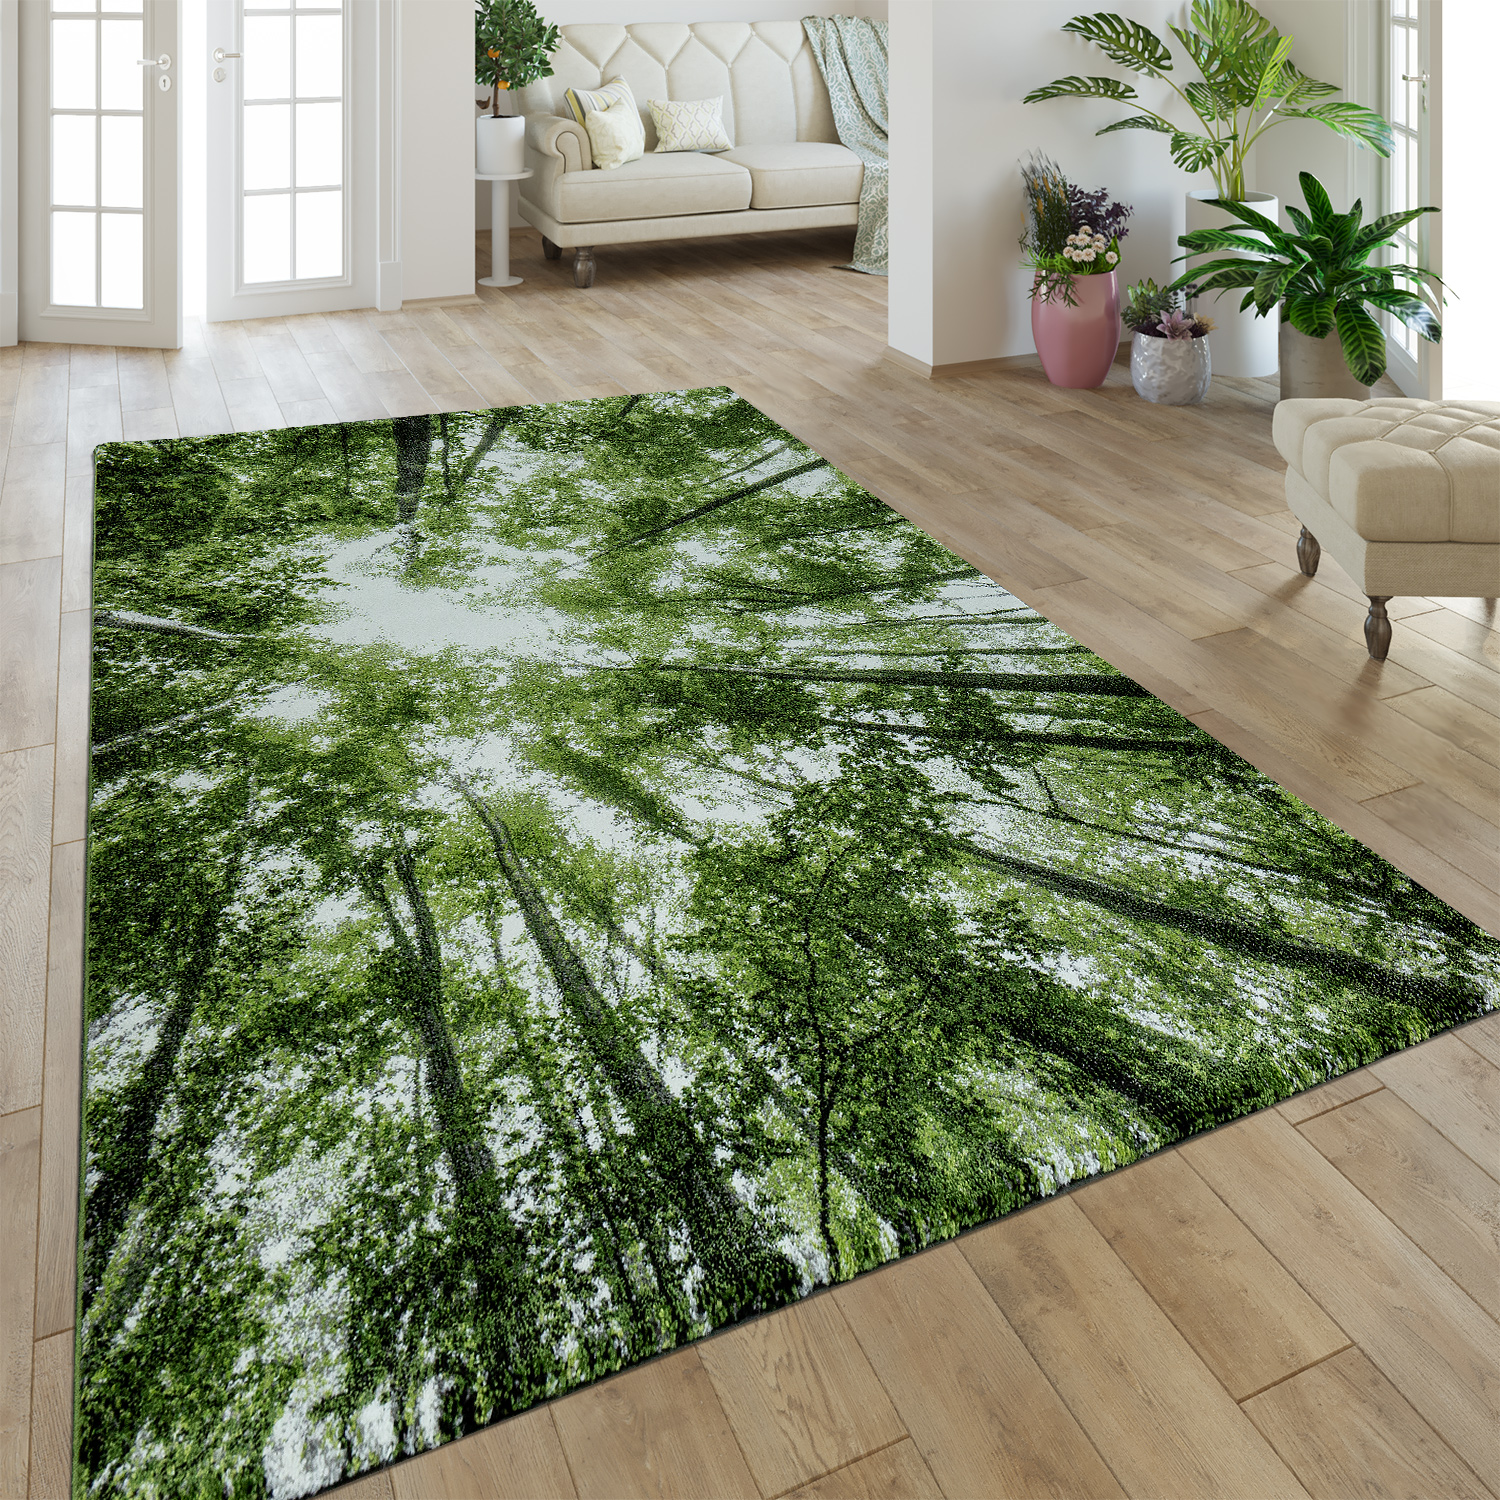 tapis v g tation nature effet for t vert tapis24. Black Bedroom Furniture Sets. Home Design Ideas